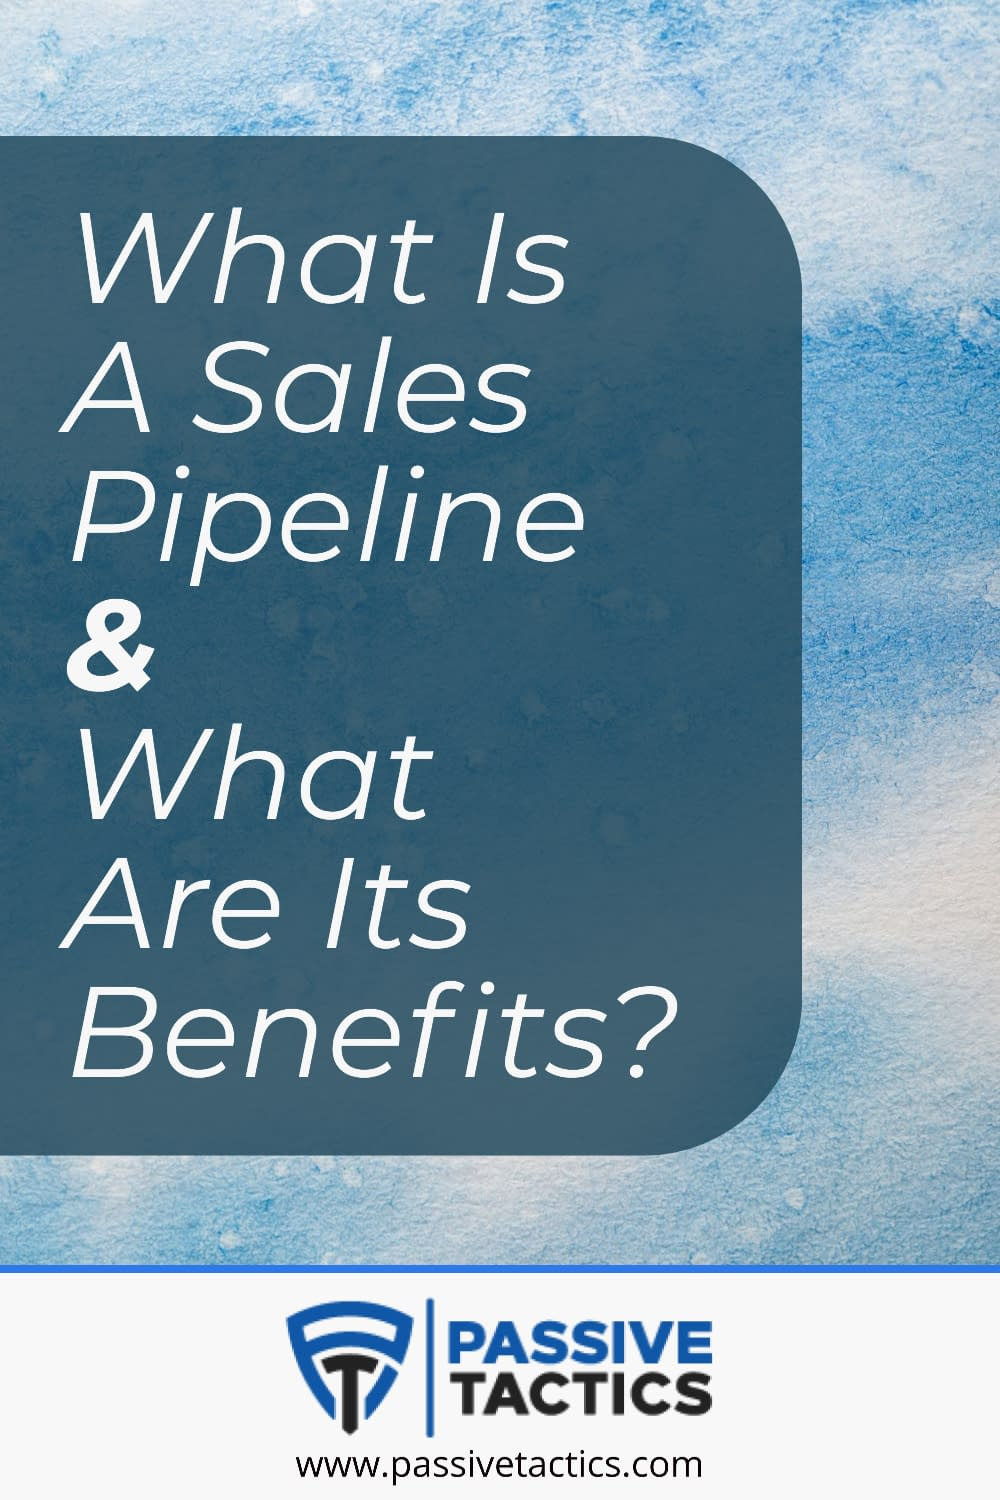 What Is A Sales Pipeline & What Are Its Benefits?